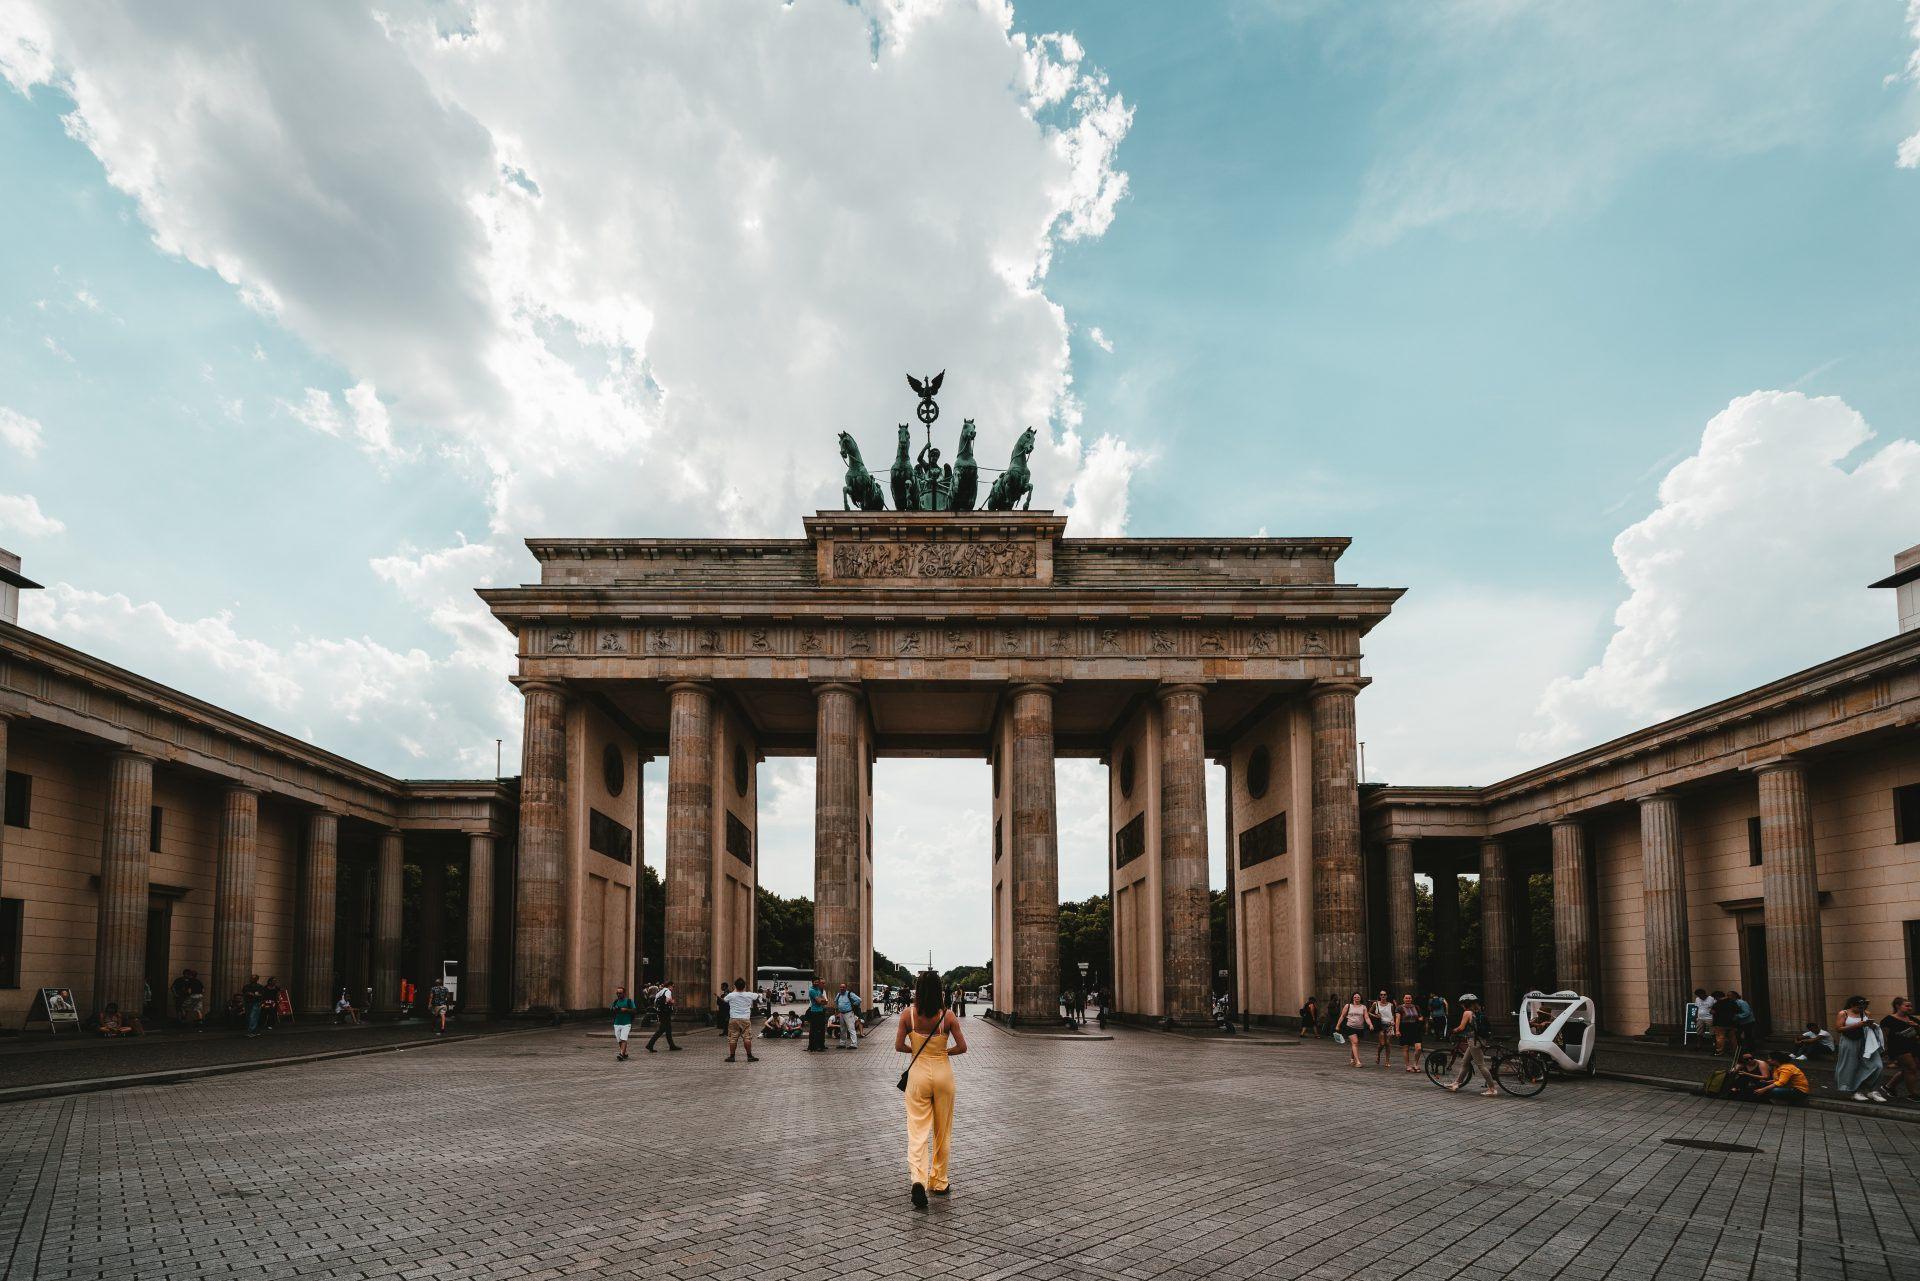 The most famous monuments in Germany Gate